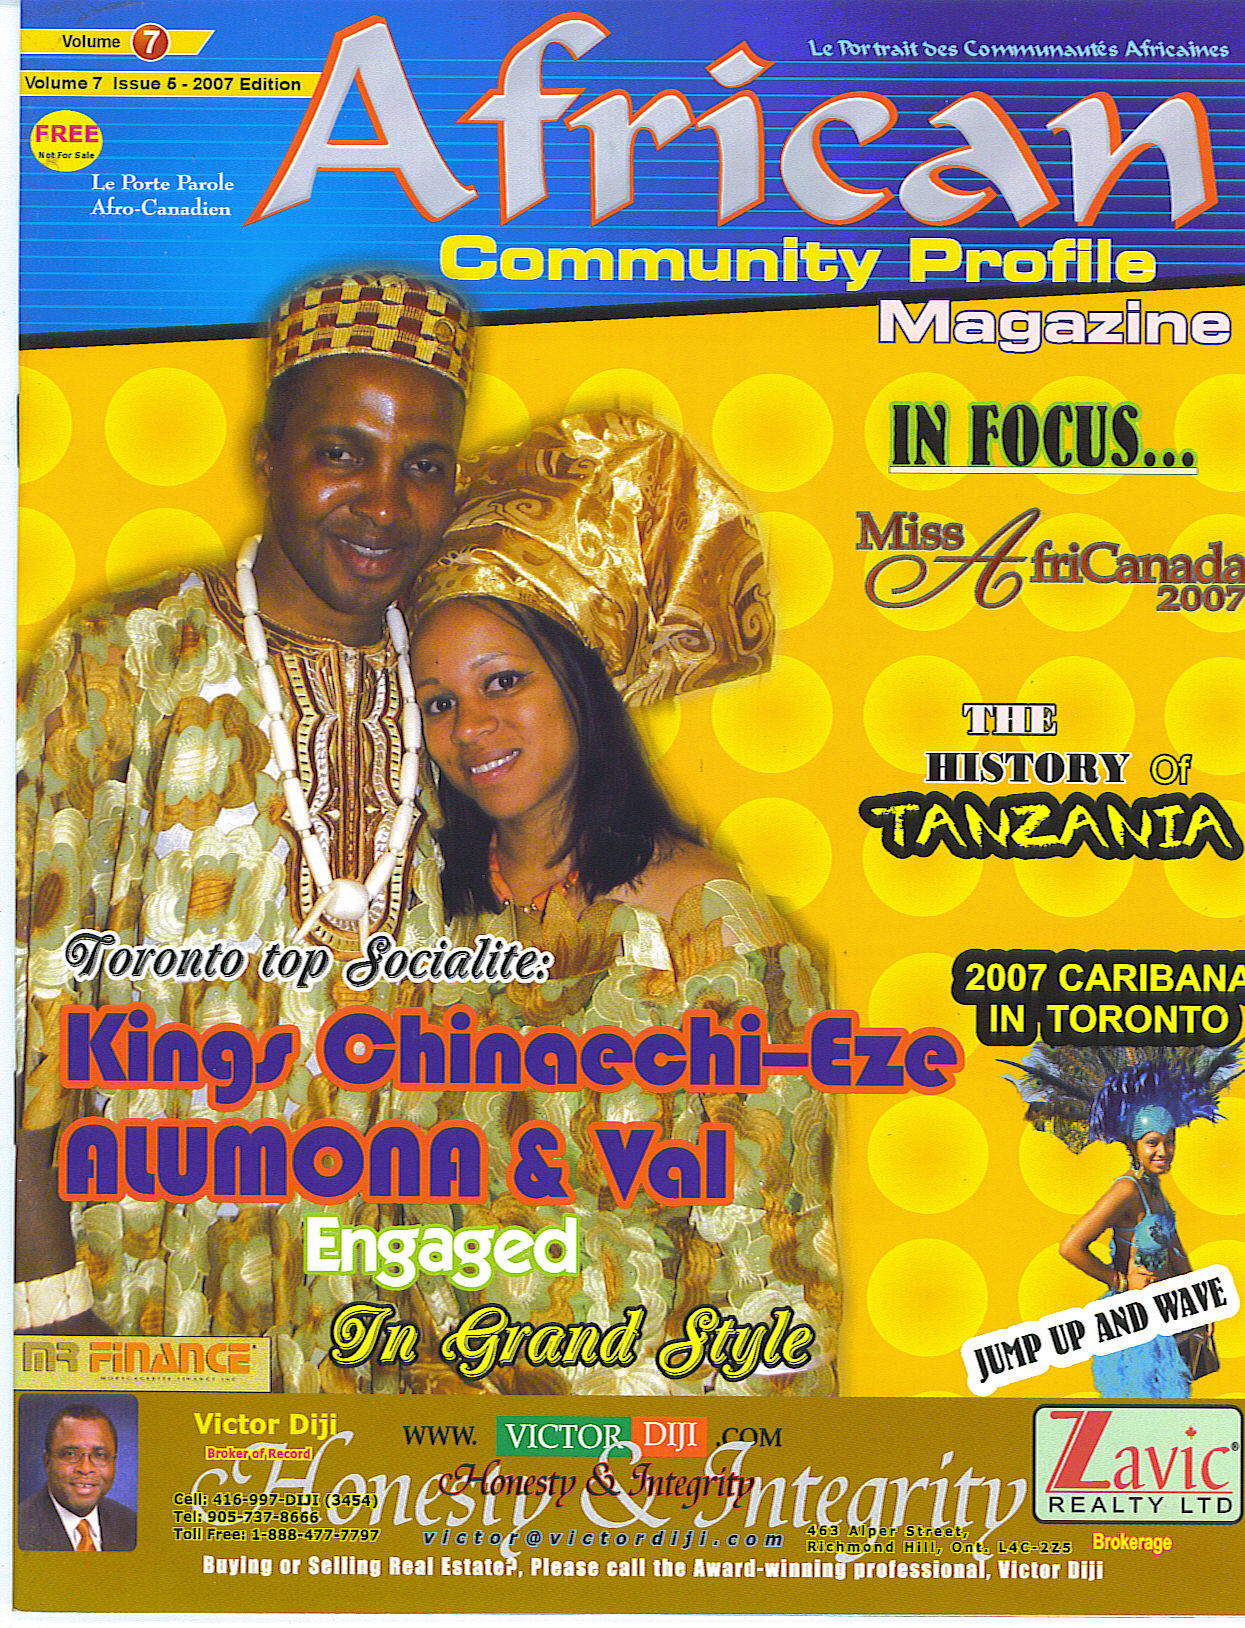 vol_7_issue5_2007_edition.jpg